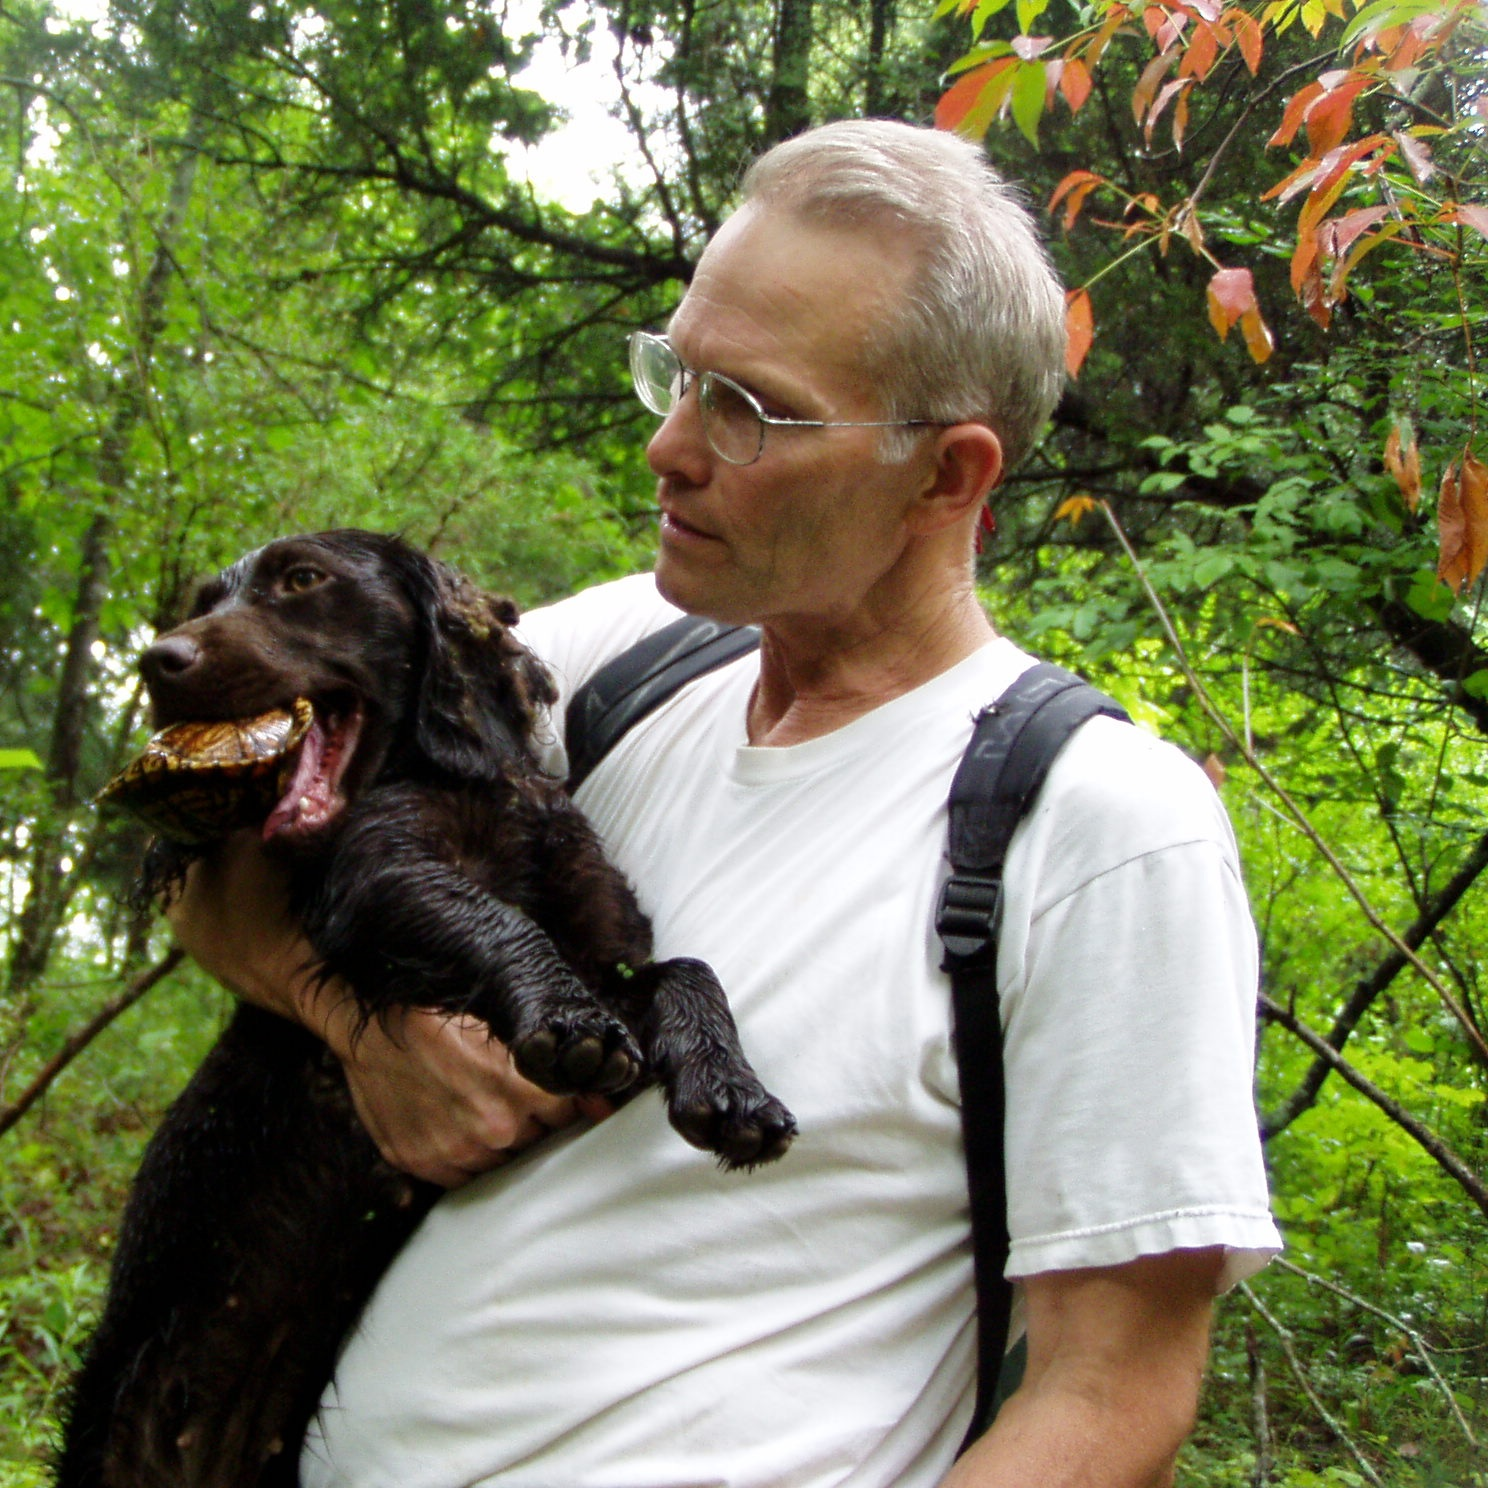 John Rucker with his Springer Spaniel who has just caught a Box Turtle